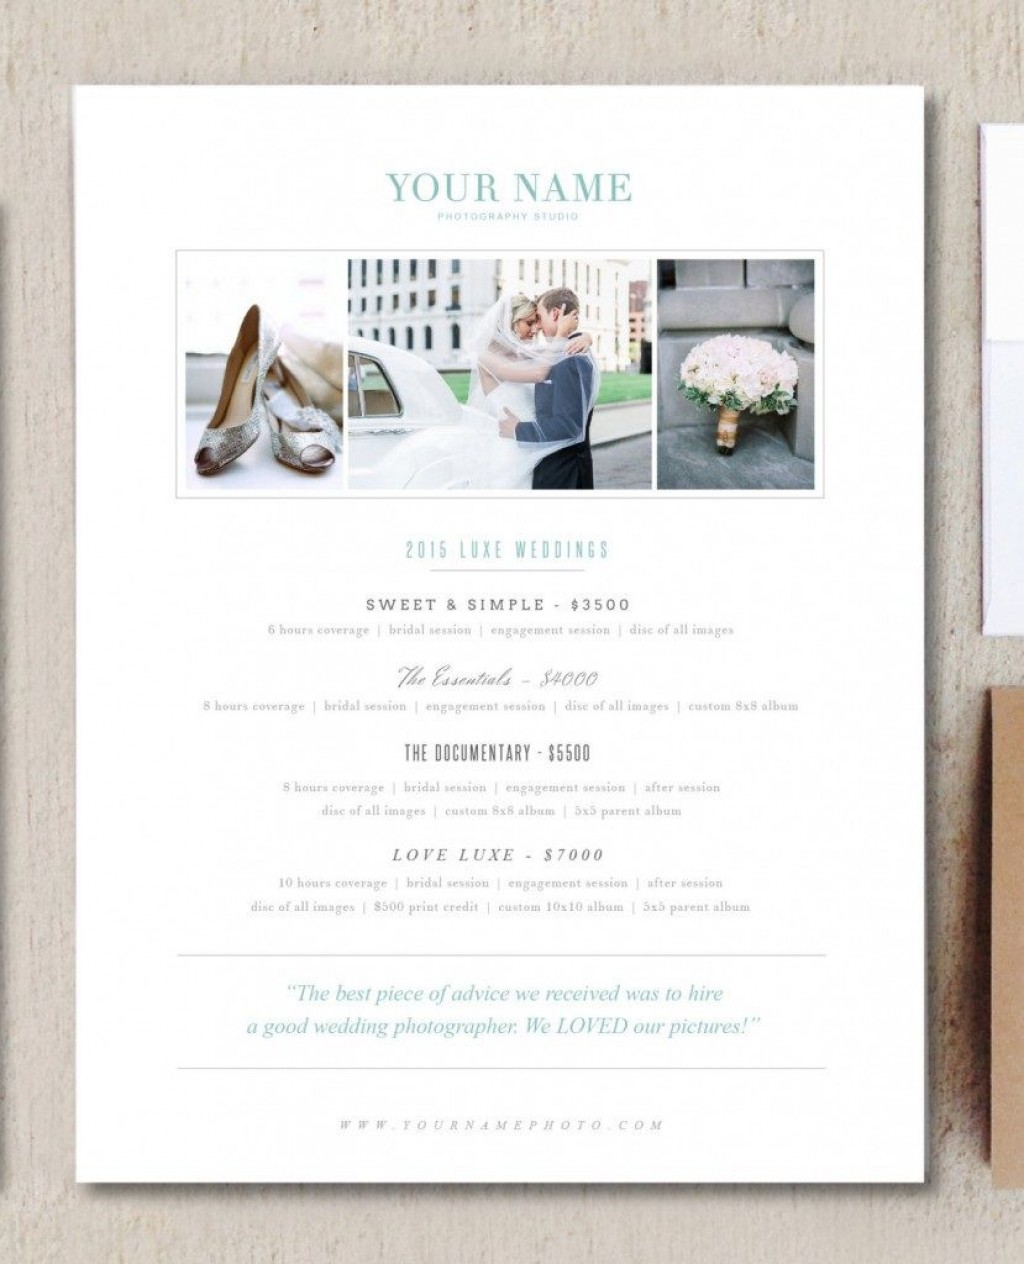 009 Wonderful Free Photography Package Template Highest Clarity  PricingLarge